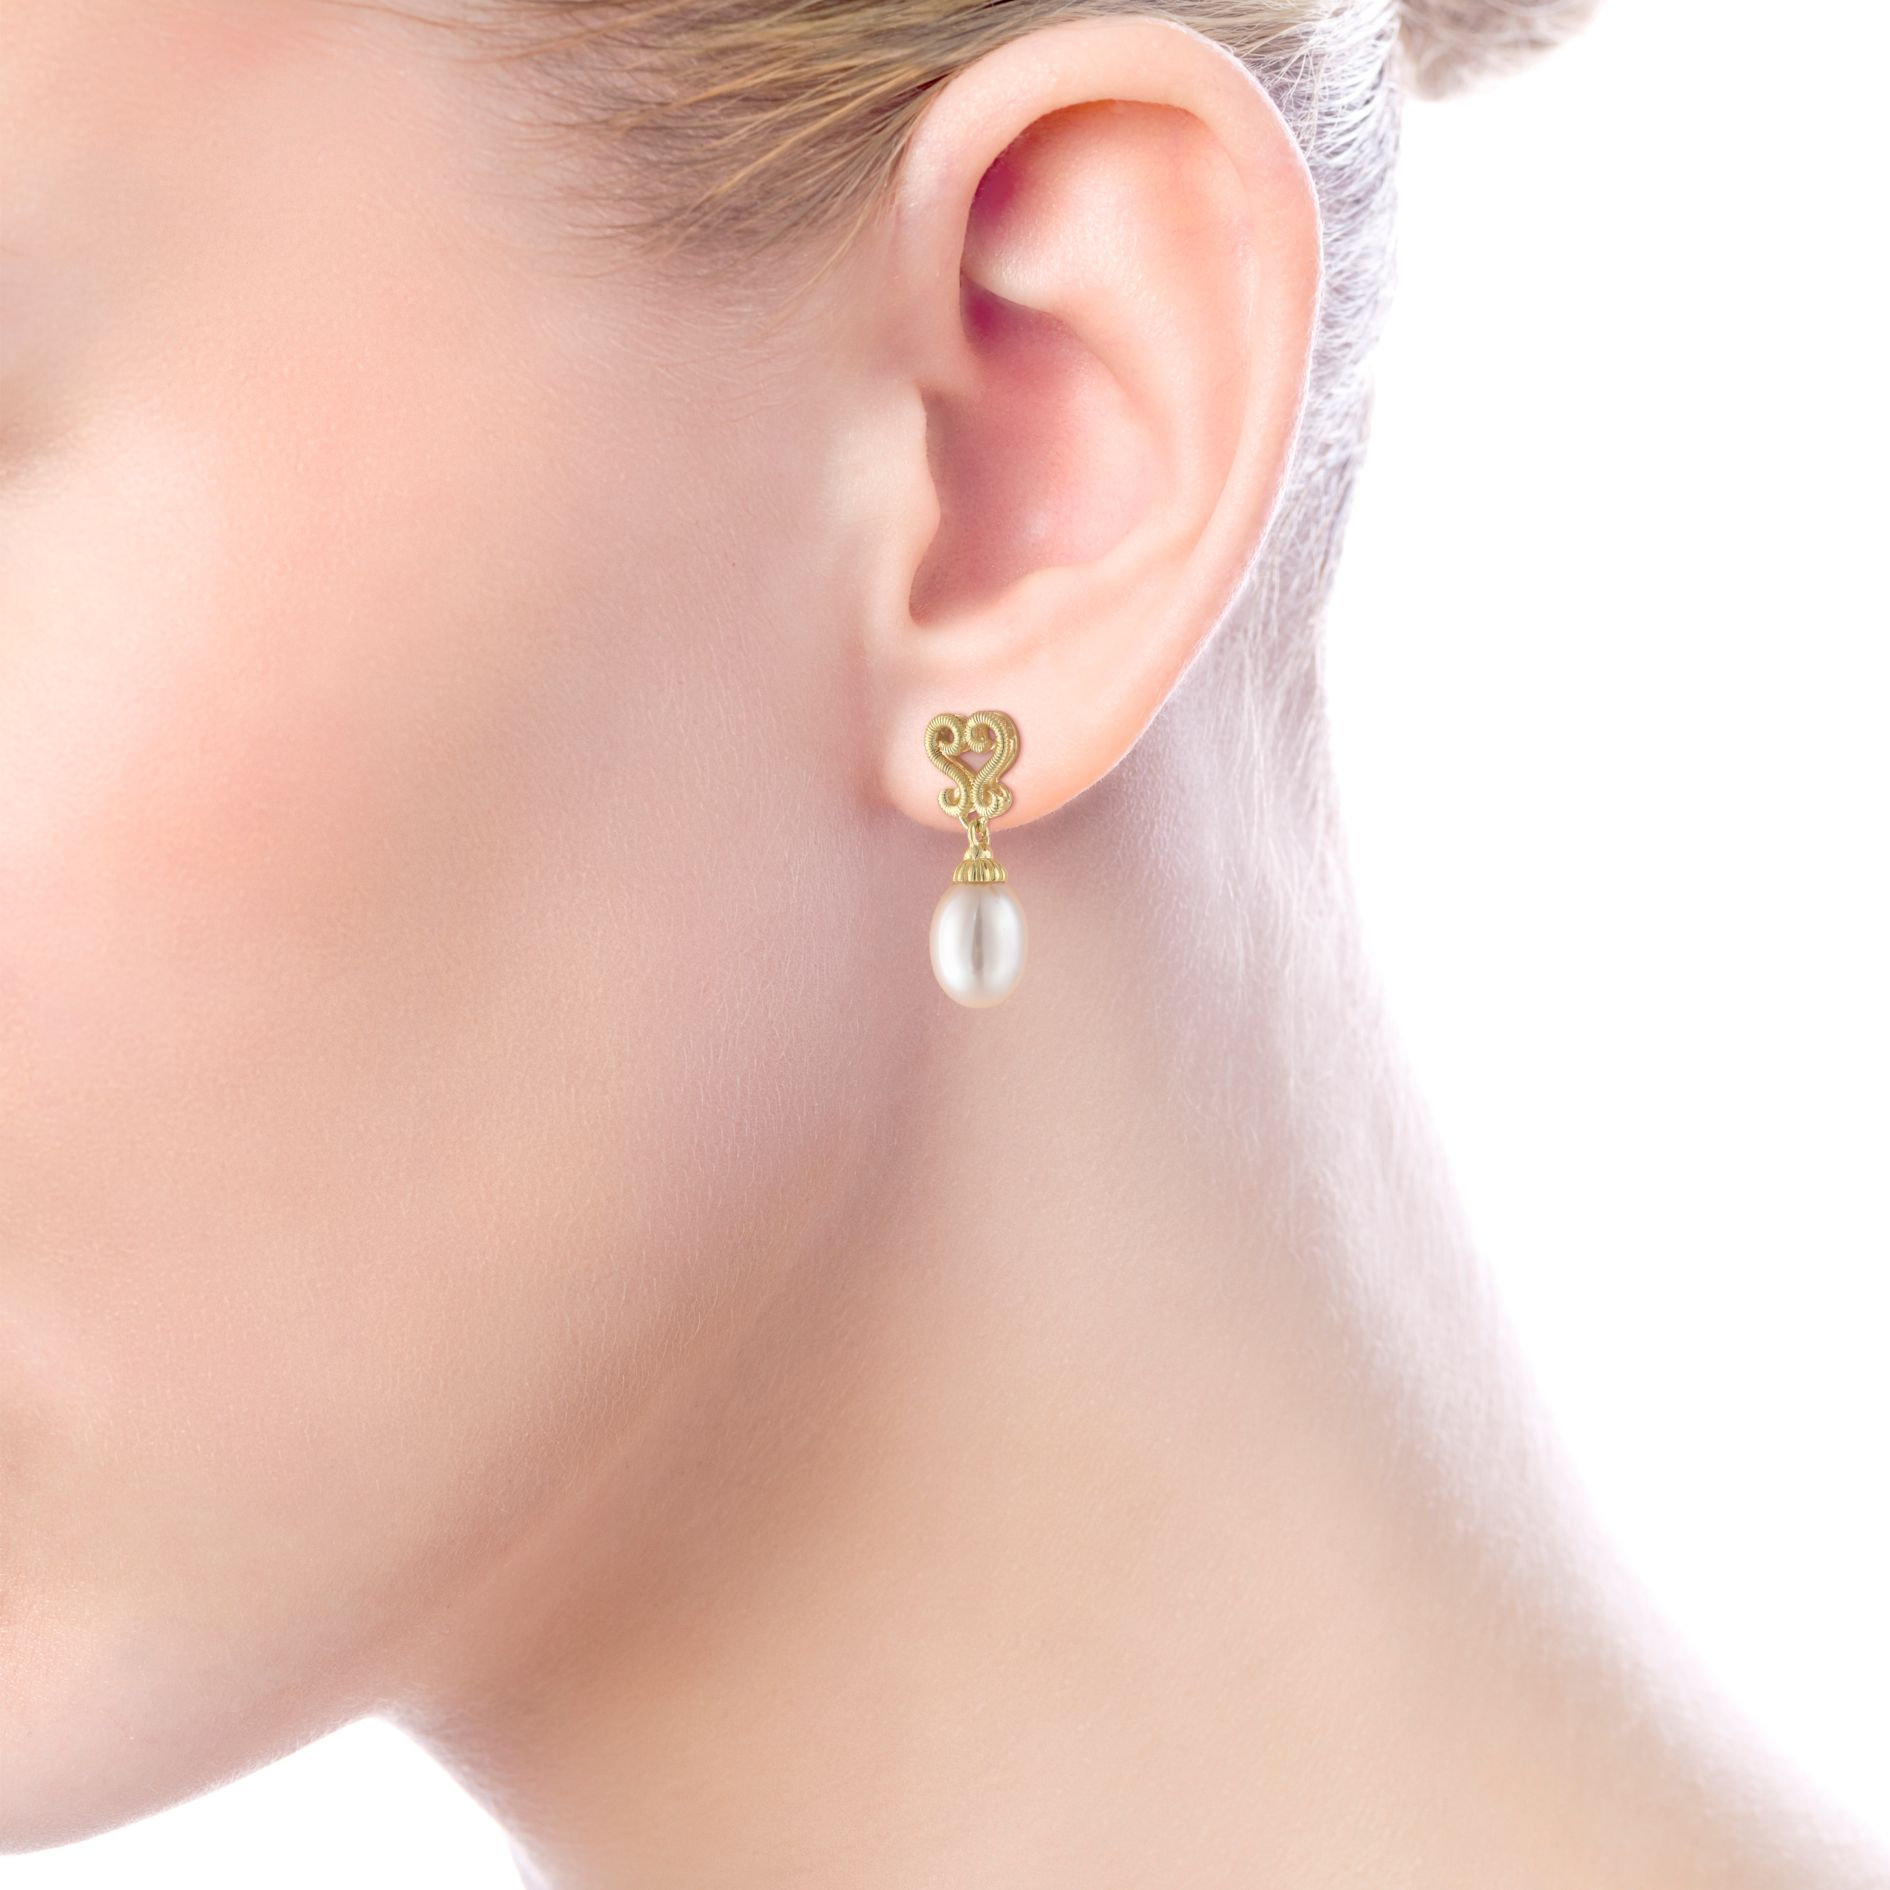 Earrings - YELLOW GOLD DROP CULTURED PEARL EARRINGS - image #2